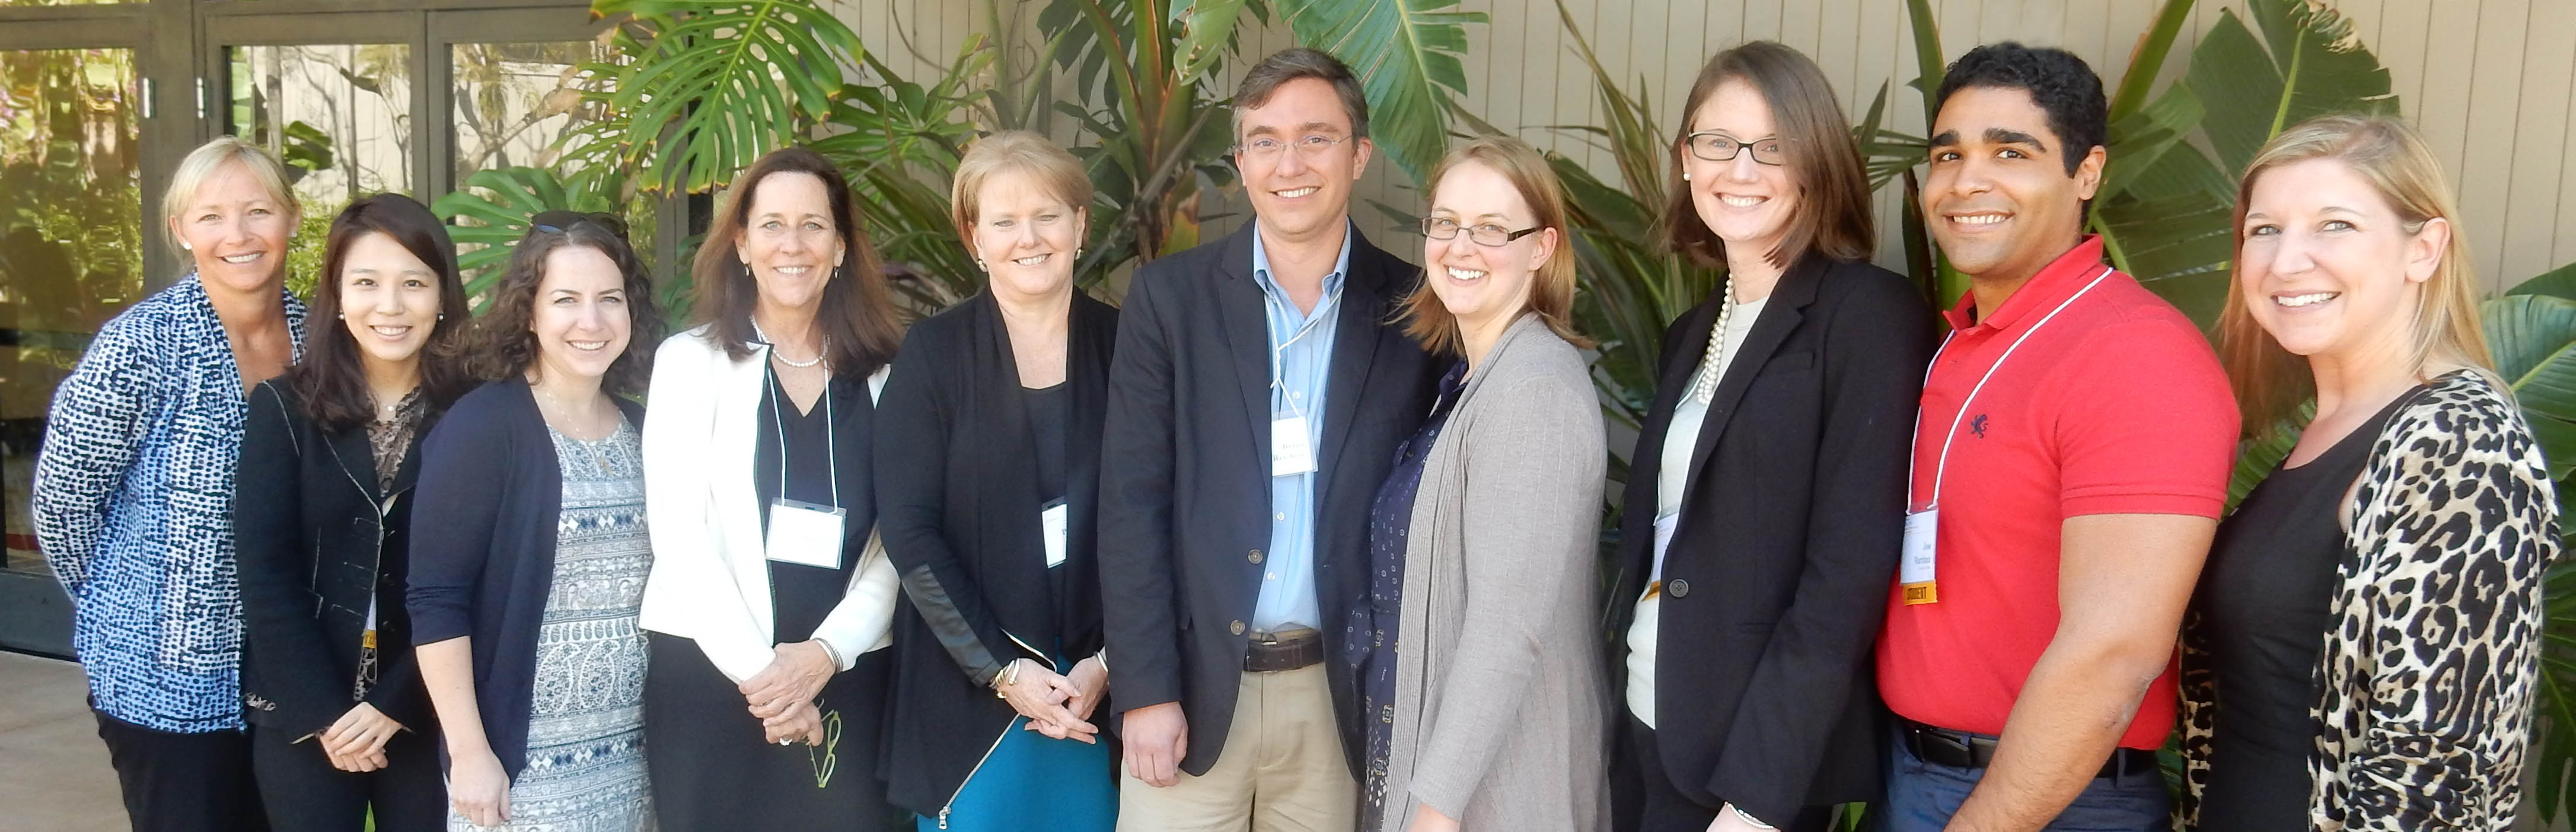 UF Scholars Contribute to National Meeting in Research Innovations in Early Intervention